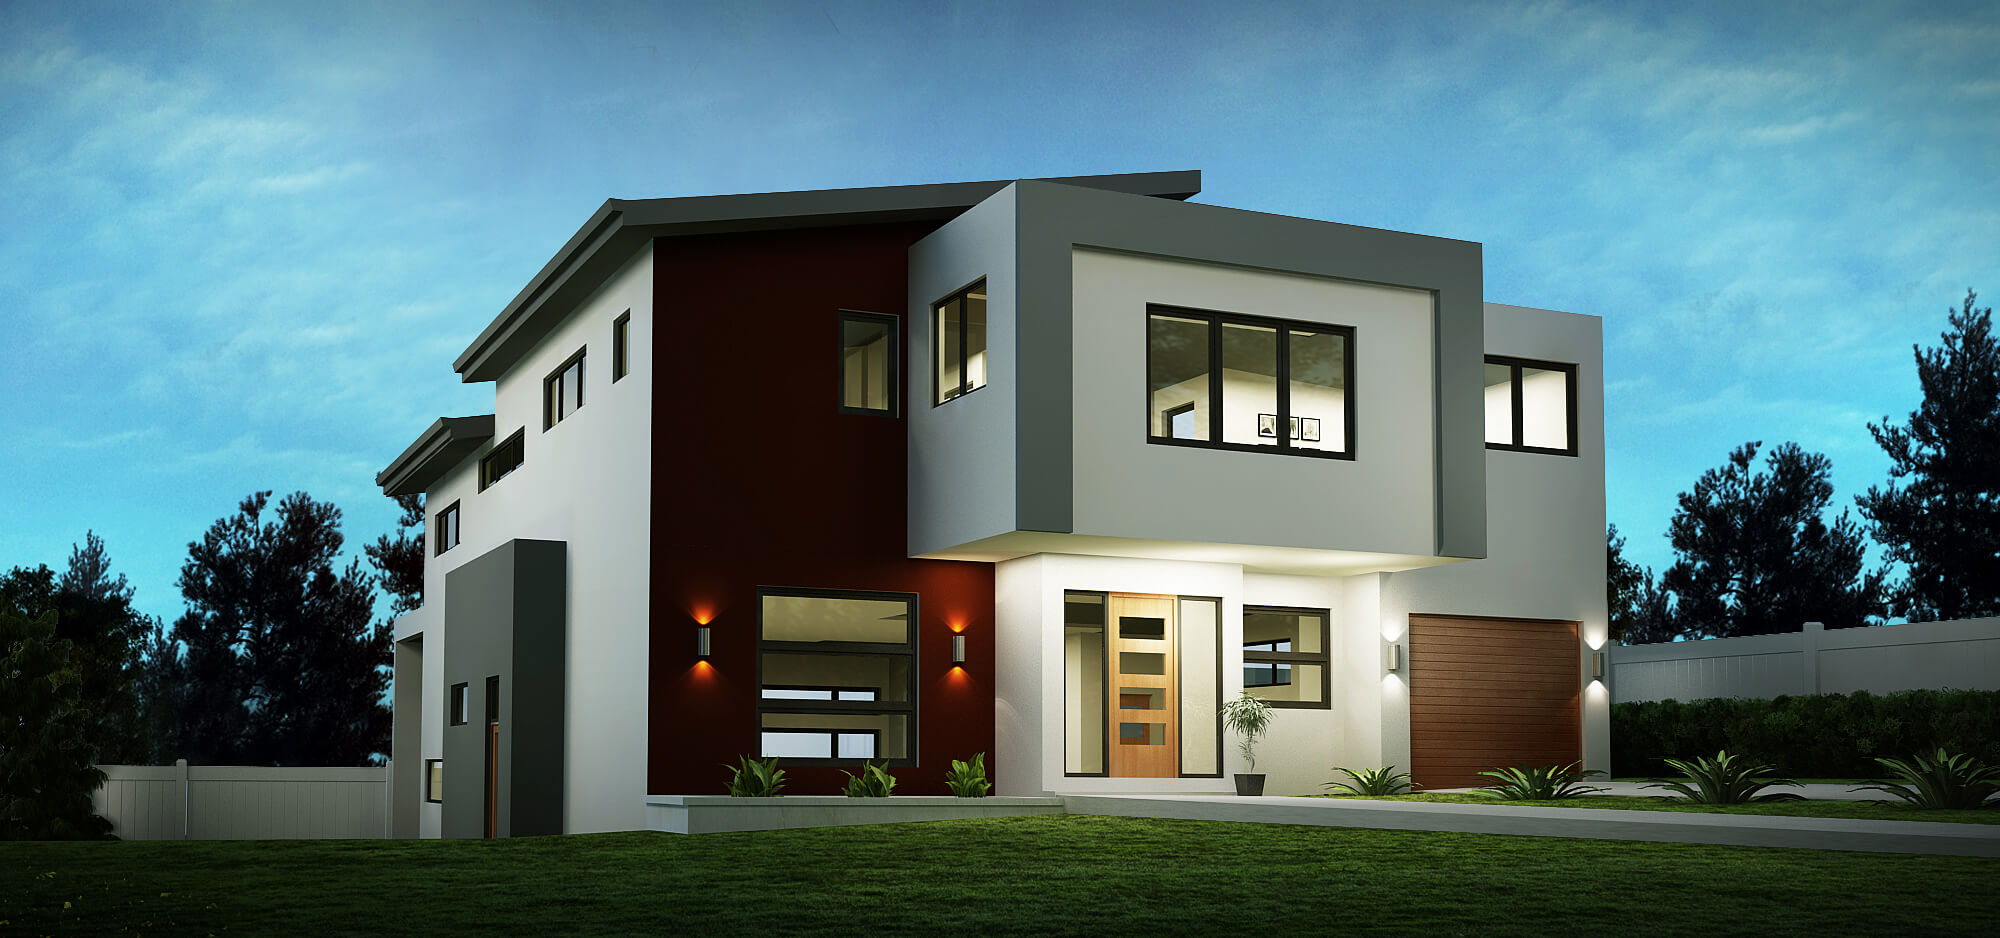 Home Designs For Sloping Blocks Of House Design For Sloping Block Ideas Home Building Plans